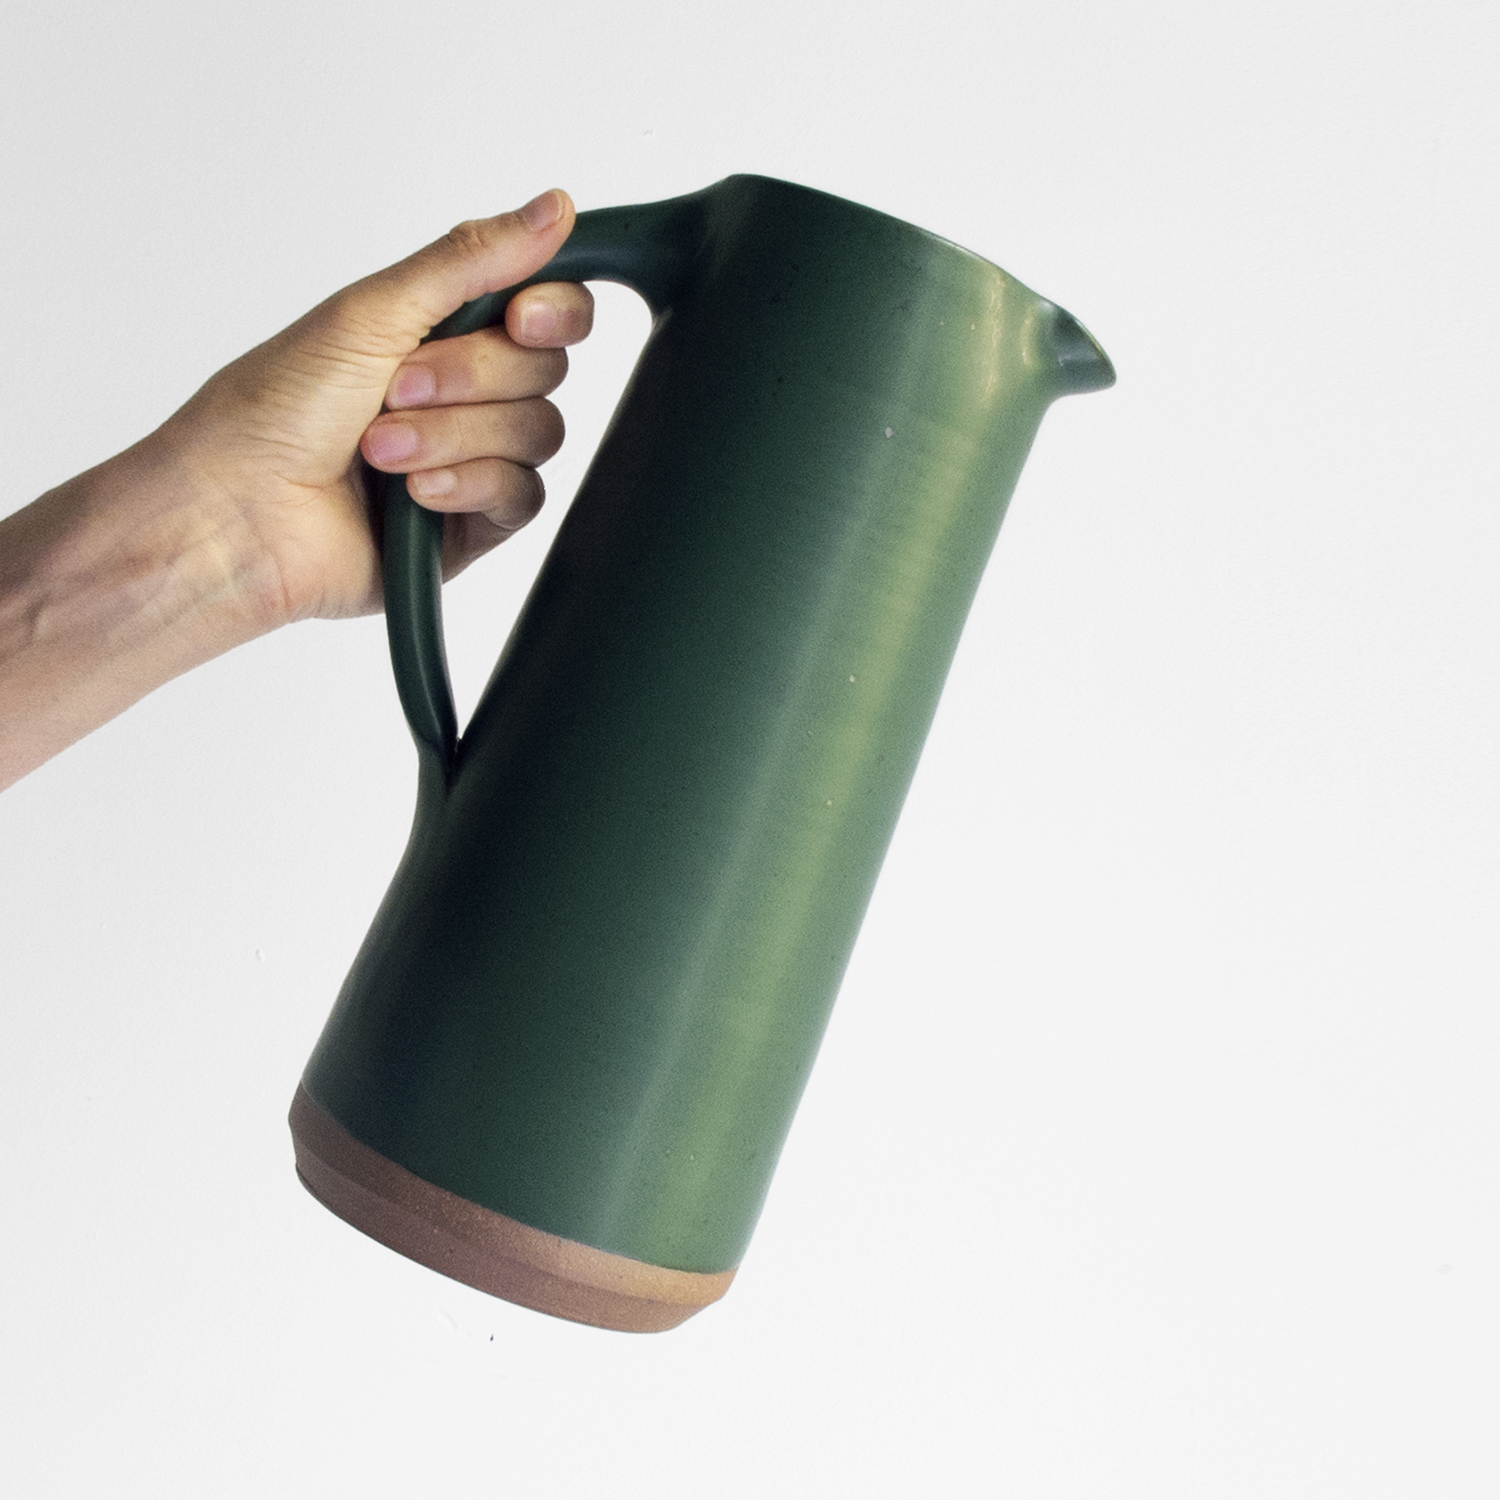 WATER PITCHERS FOR YOUR TABLE